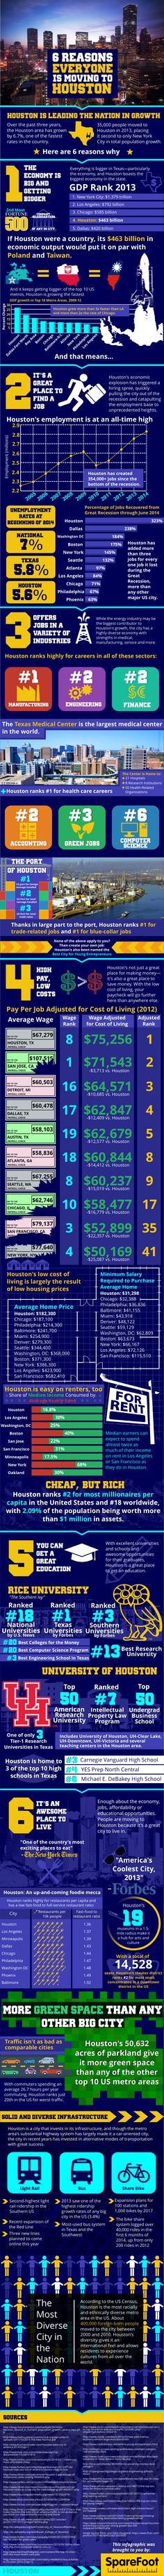 Tracy Glesby Real Estate Tracy Glesby Great infographic on the 6 Reasons Why Everyone Is Moving To Houston via Tracy Glesby Houston Real Estate, Houston Tx, Portrait Studio, Moving To Texas, Space City, Texas Bluebonnets, Texas Pride, H Town, Texas Travel